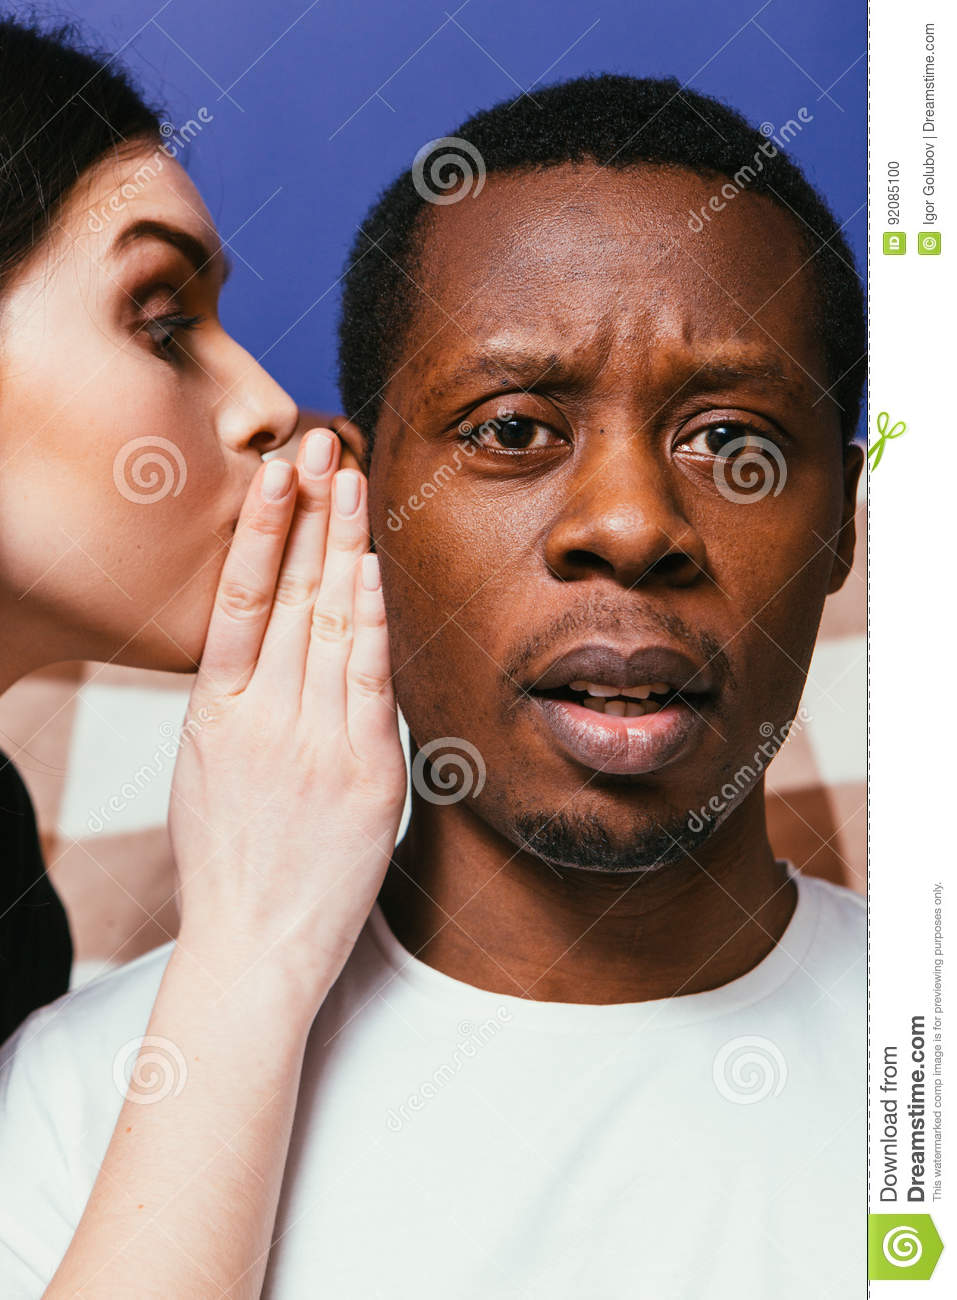 Gossip woman whisper on man ear, tell secret